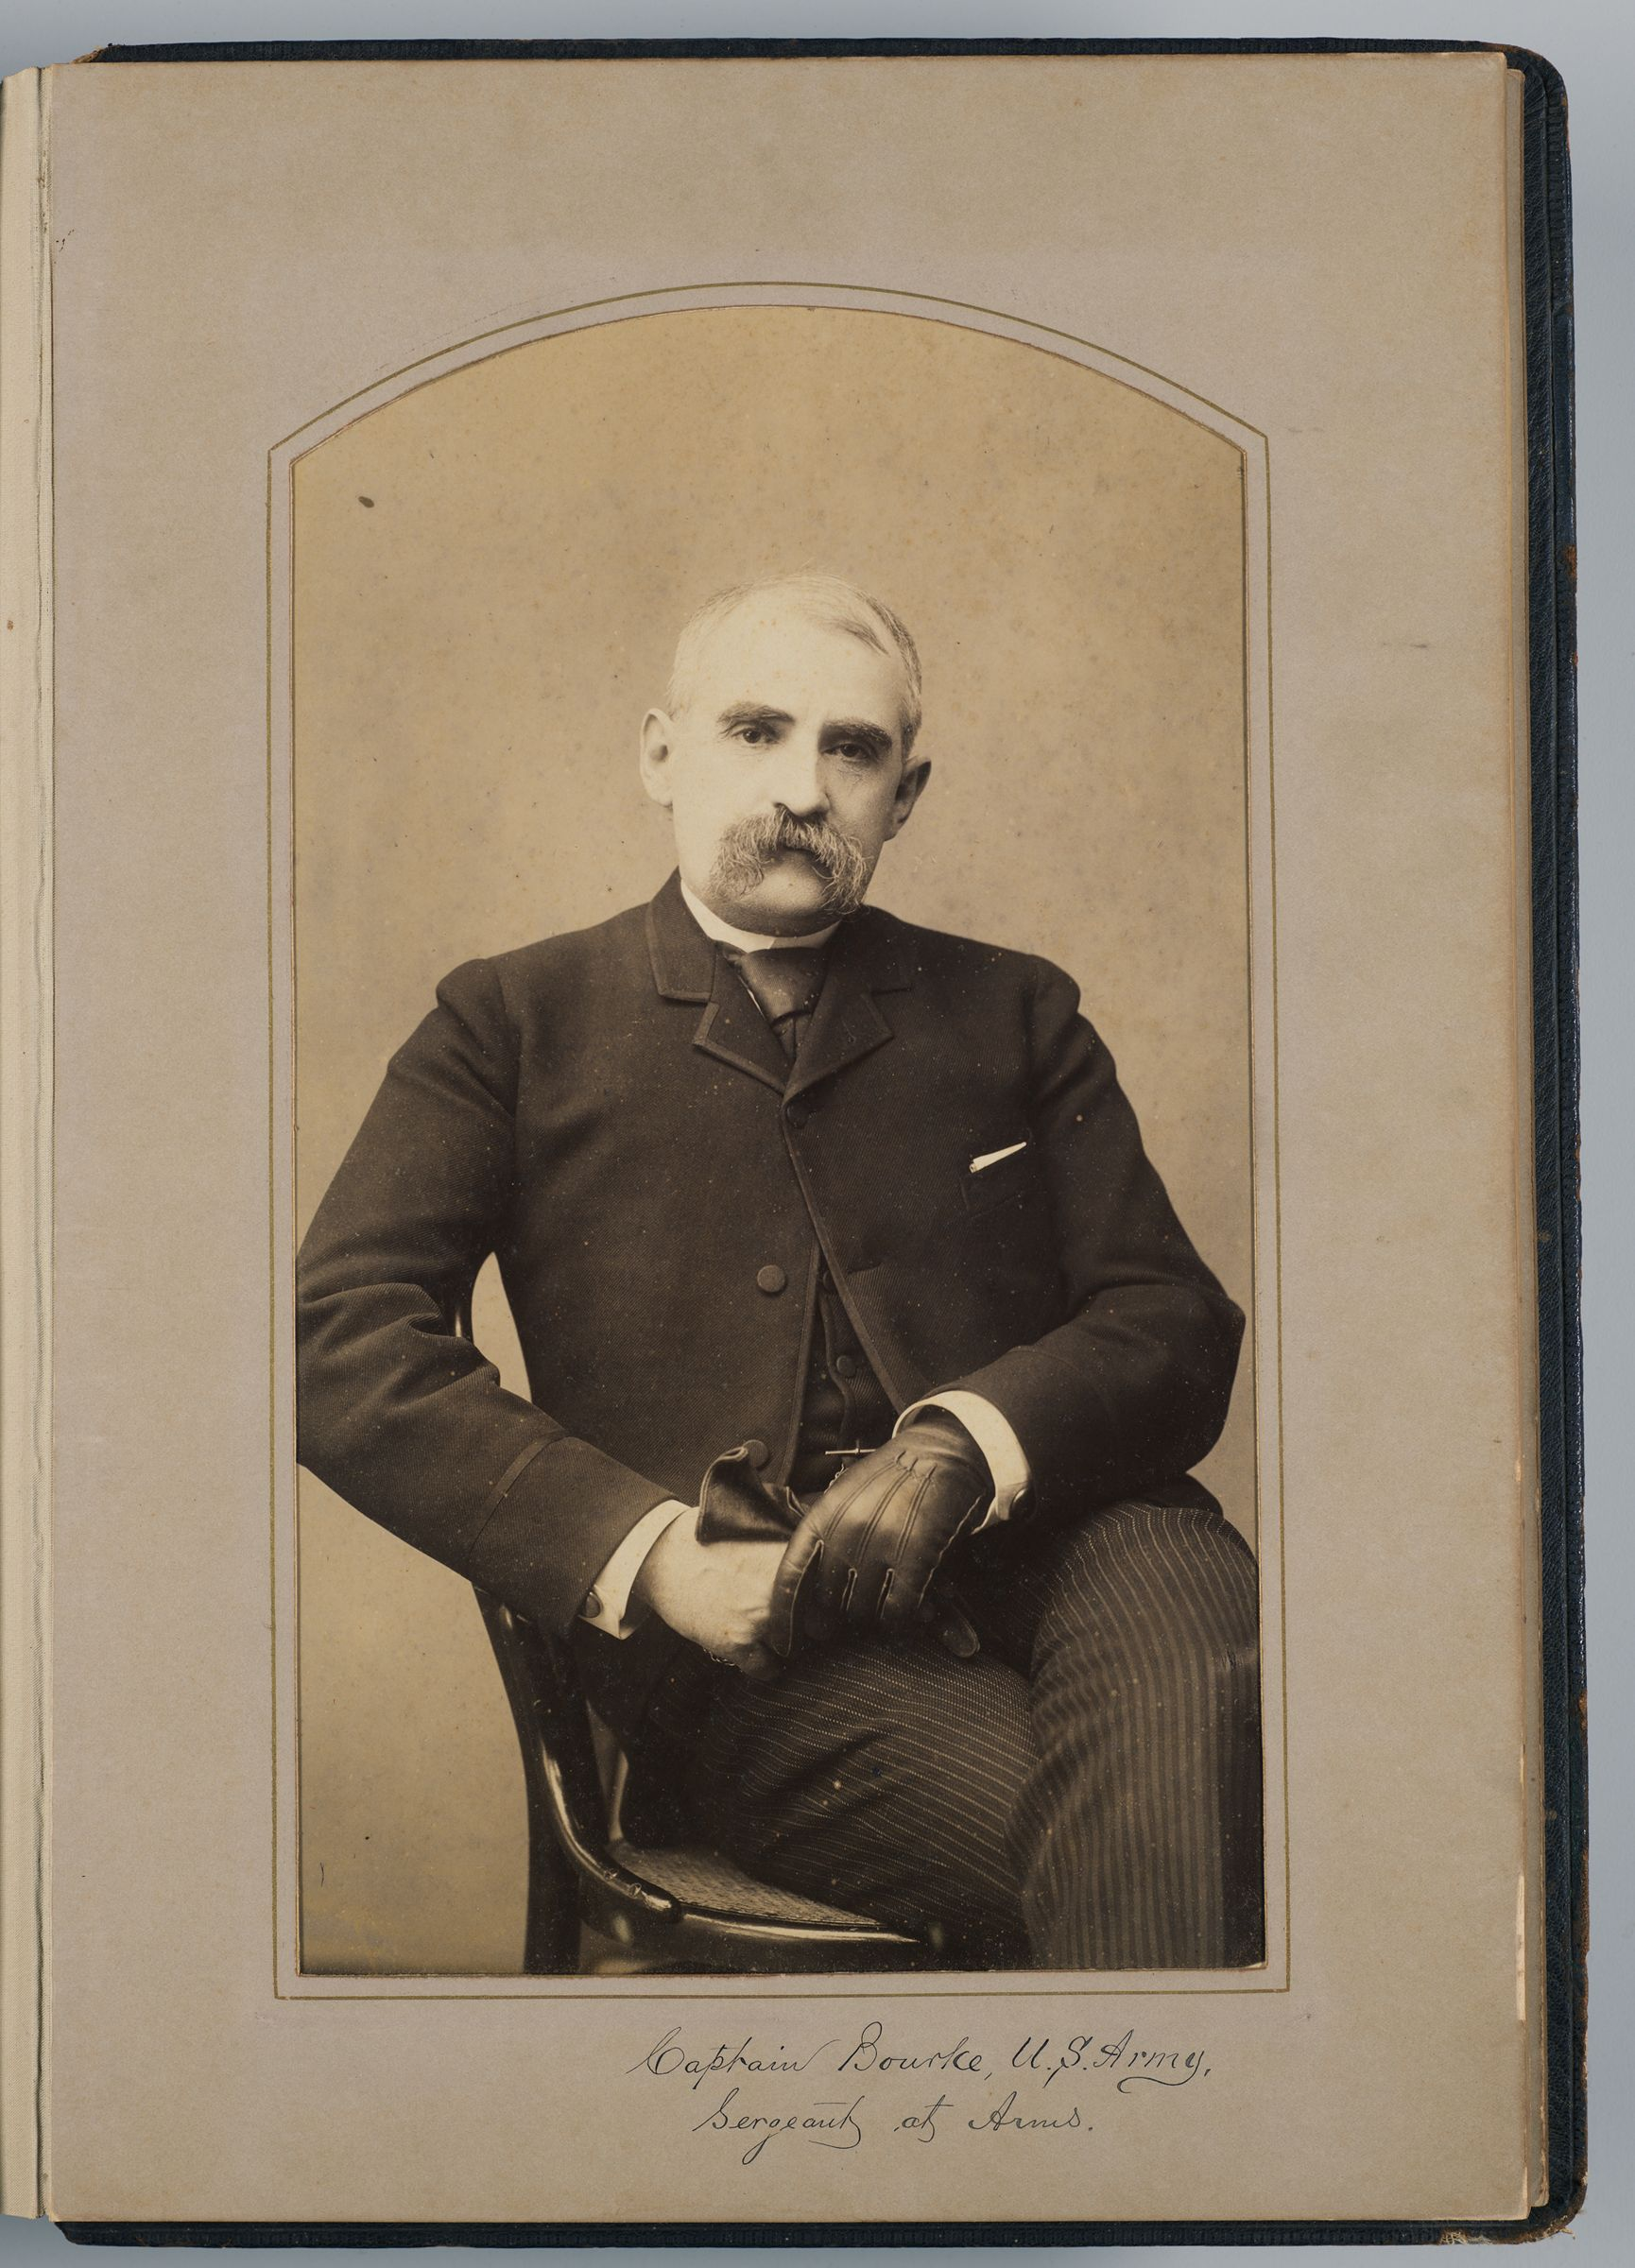 John G. Bourke (U.s. Army Sargent At Arms)